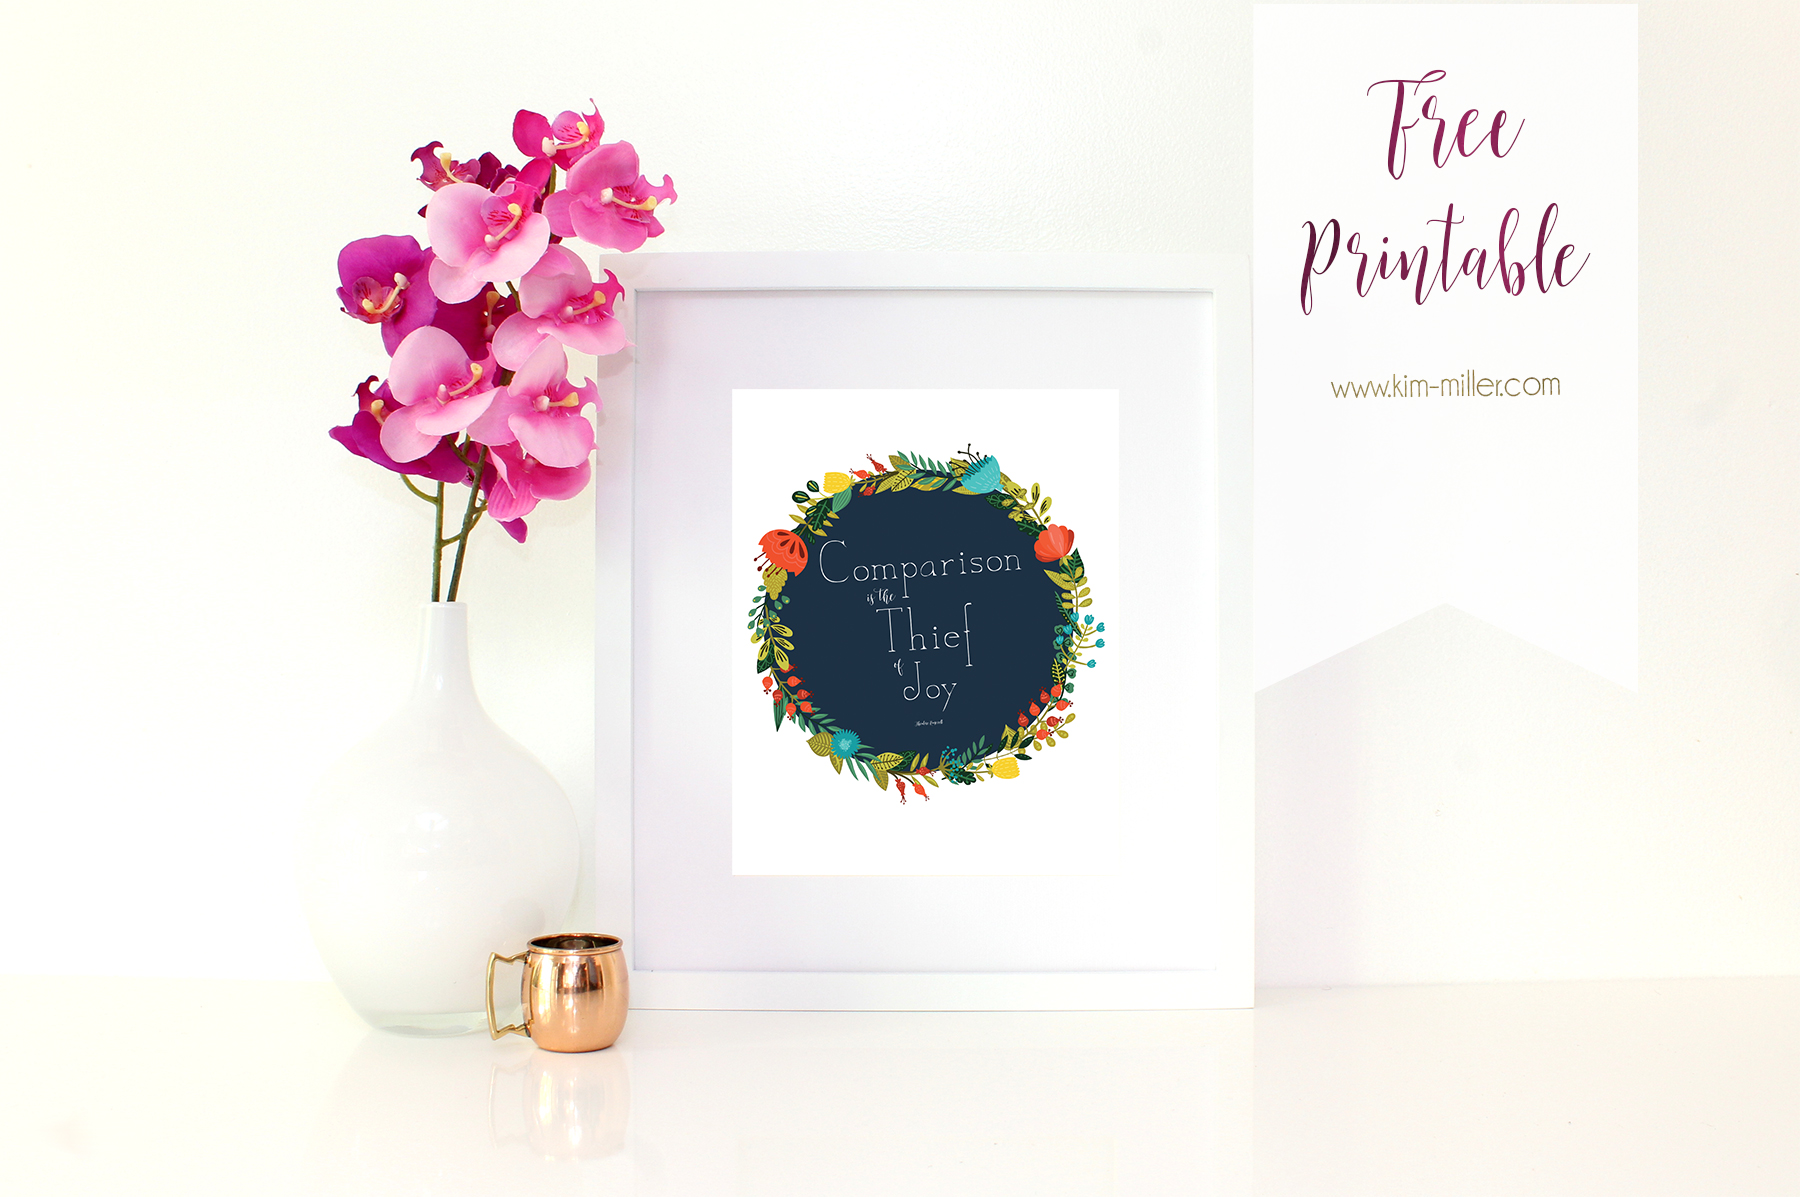 Free Printable, Comparison is the thief of Joy, Theodore Roosevelt Quotes, Inspirational Prints, Inspirational Quotes, Freebie Friday